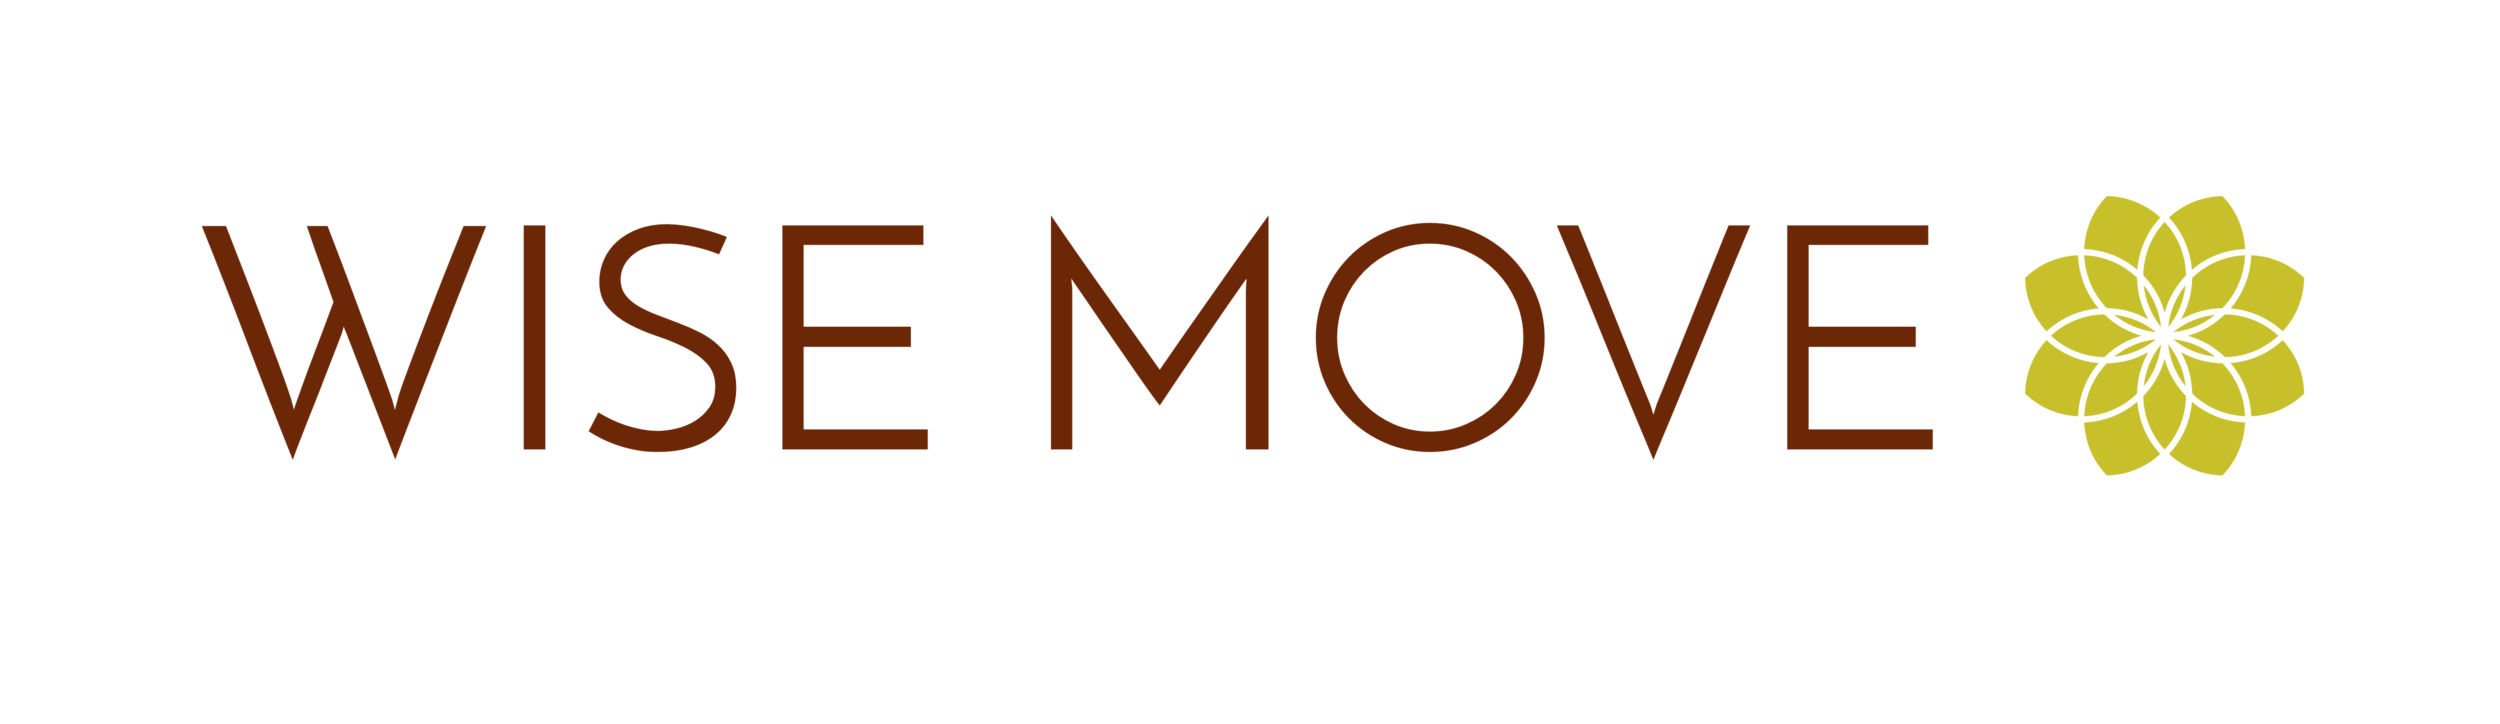 WISE MOVE-logo (6).png